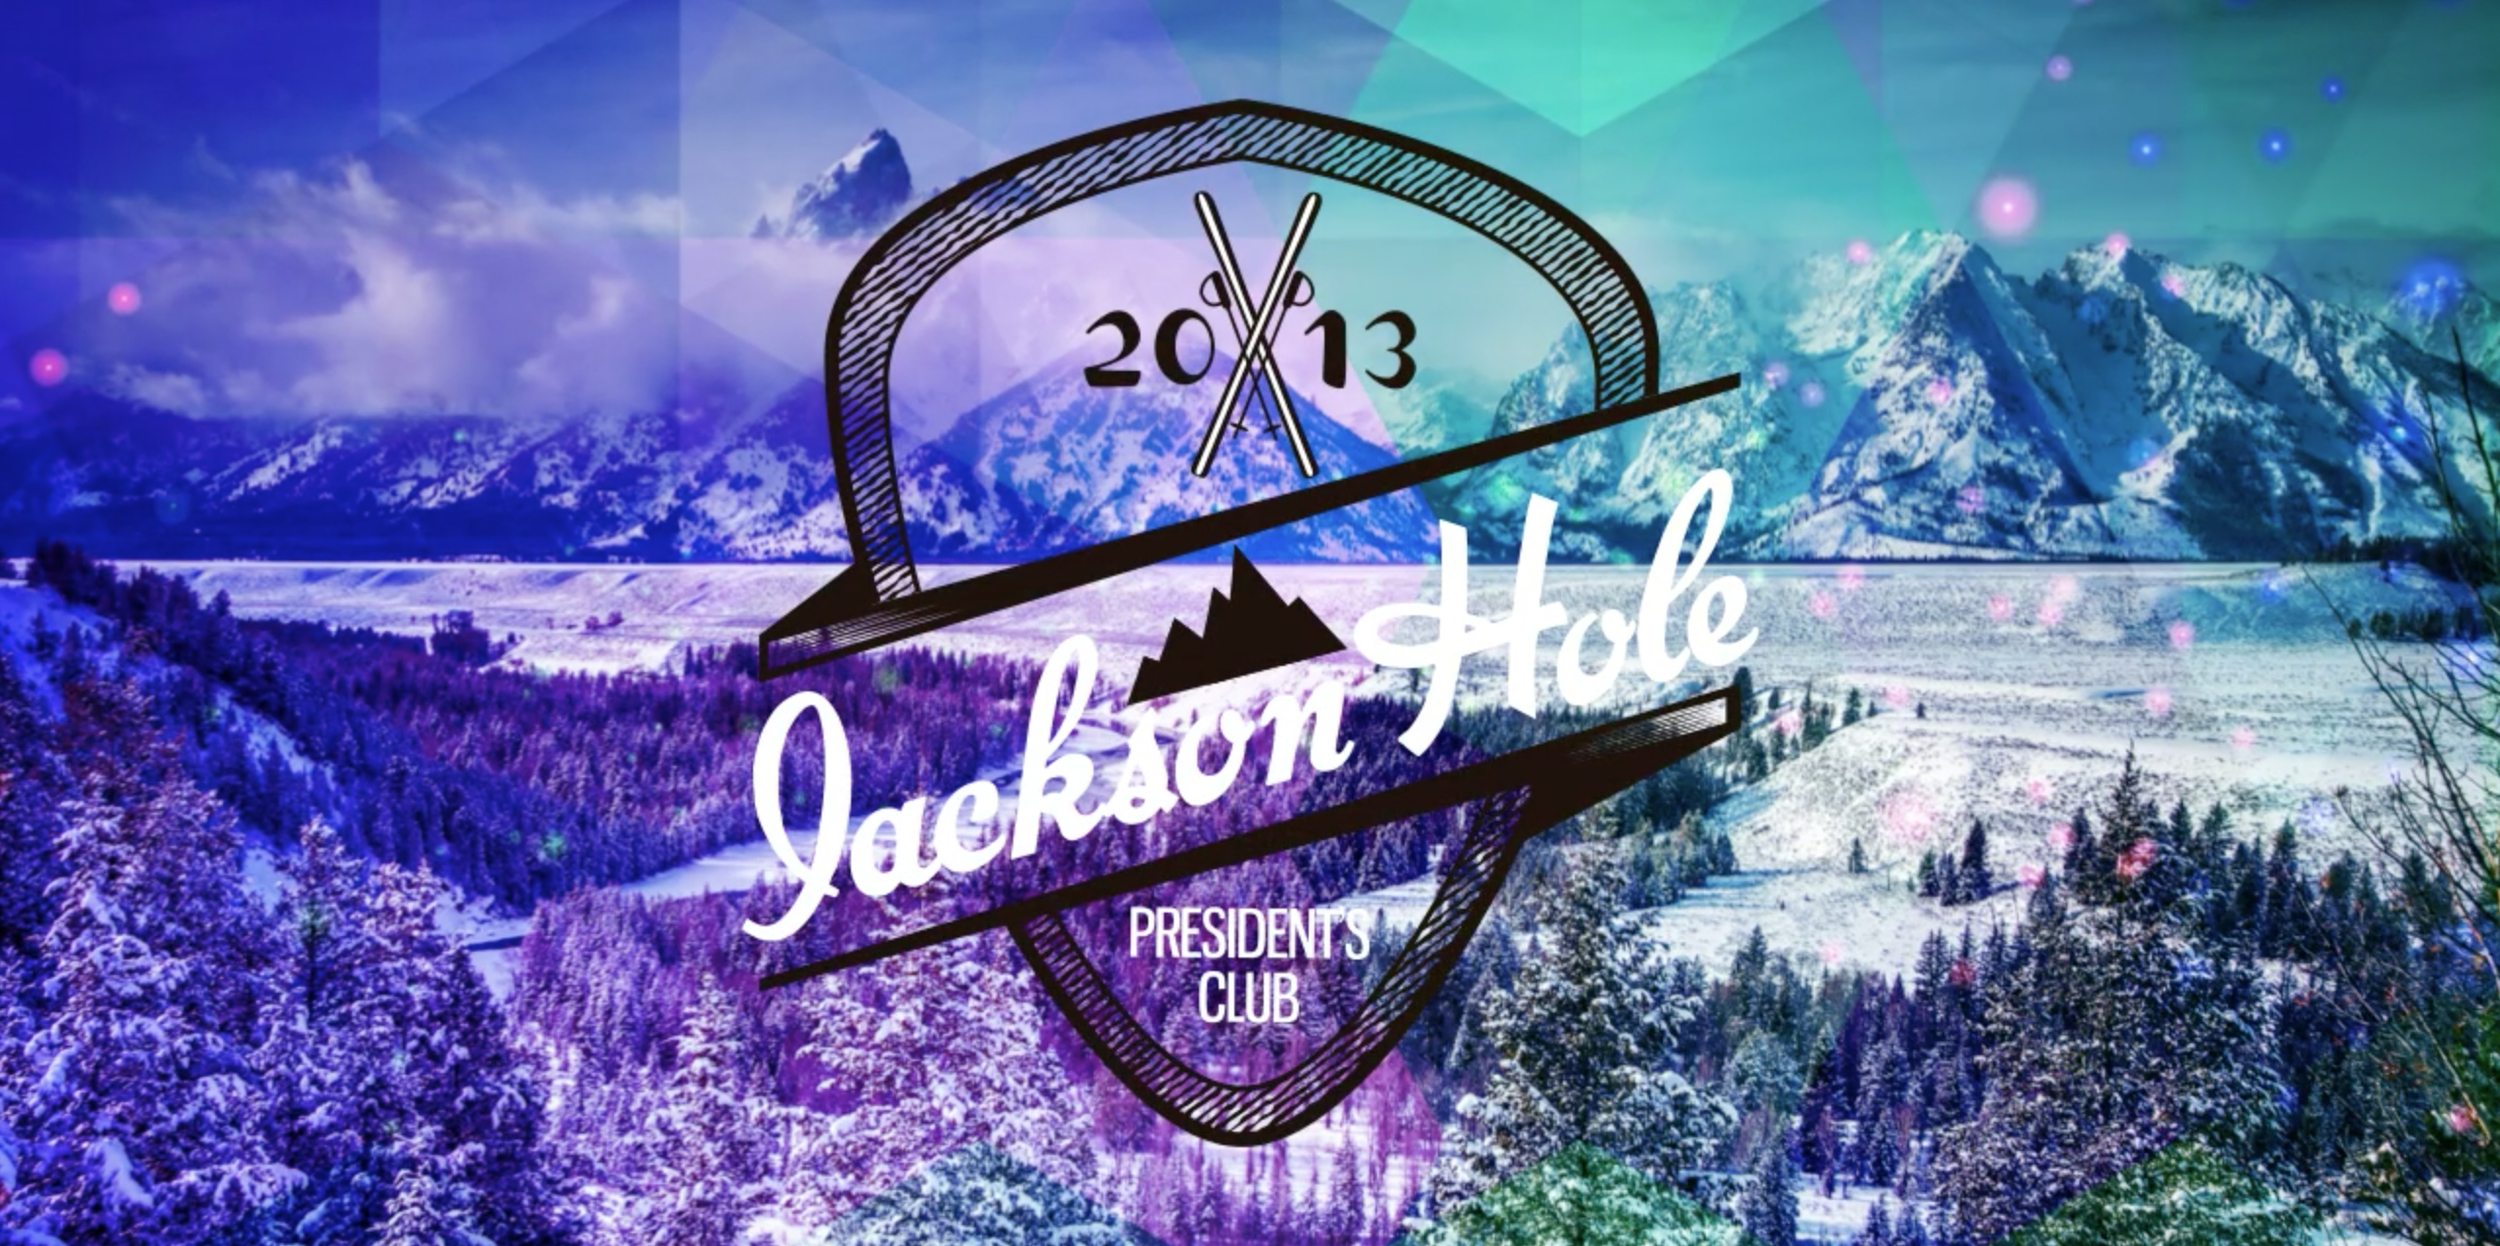 jackson hole video grab.jpg